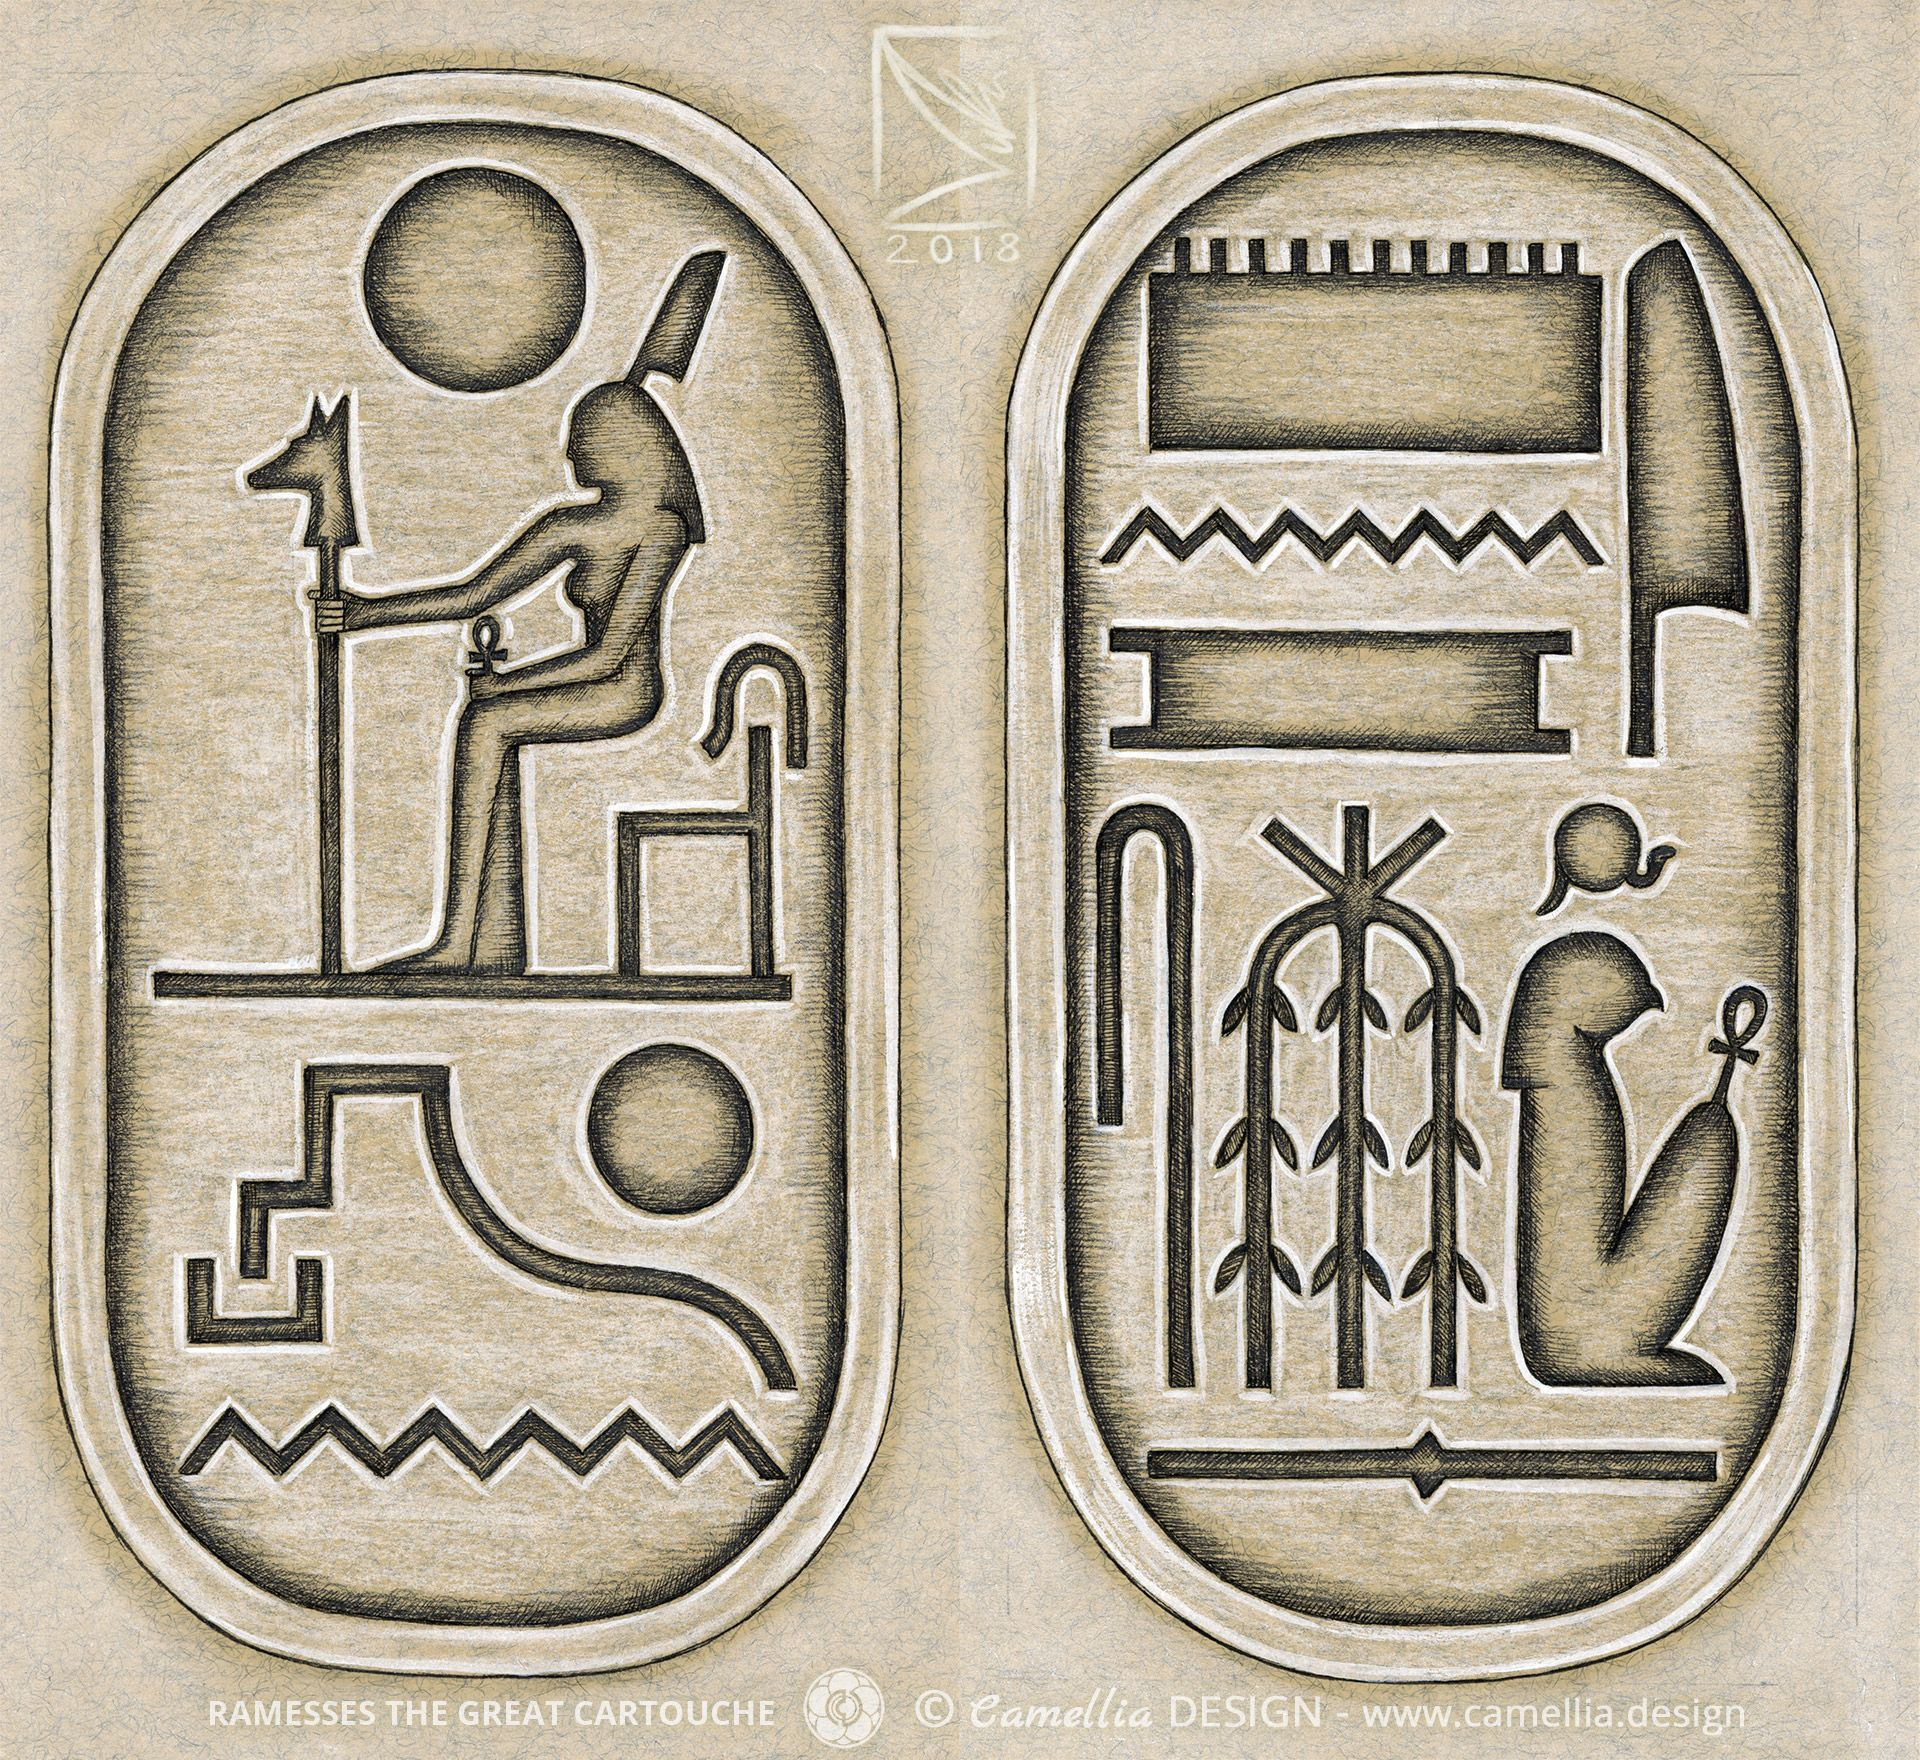 RAMESSES THE GREAT CARTOUCHE